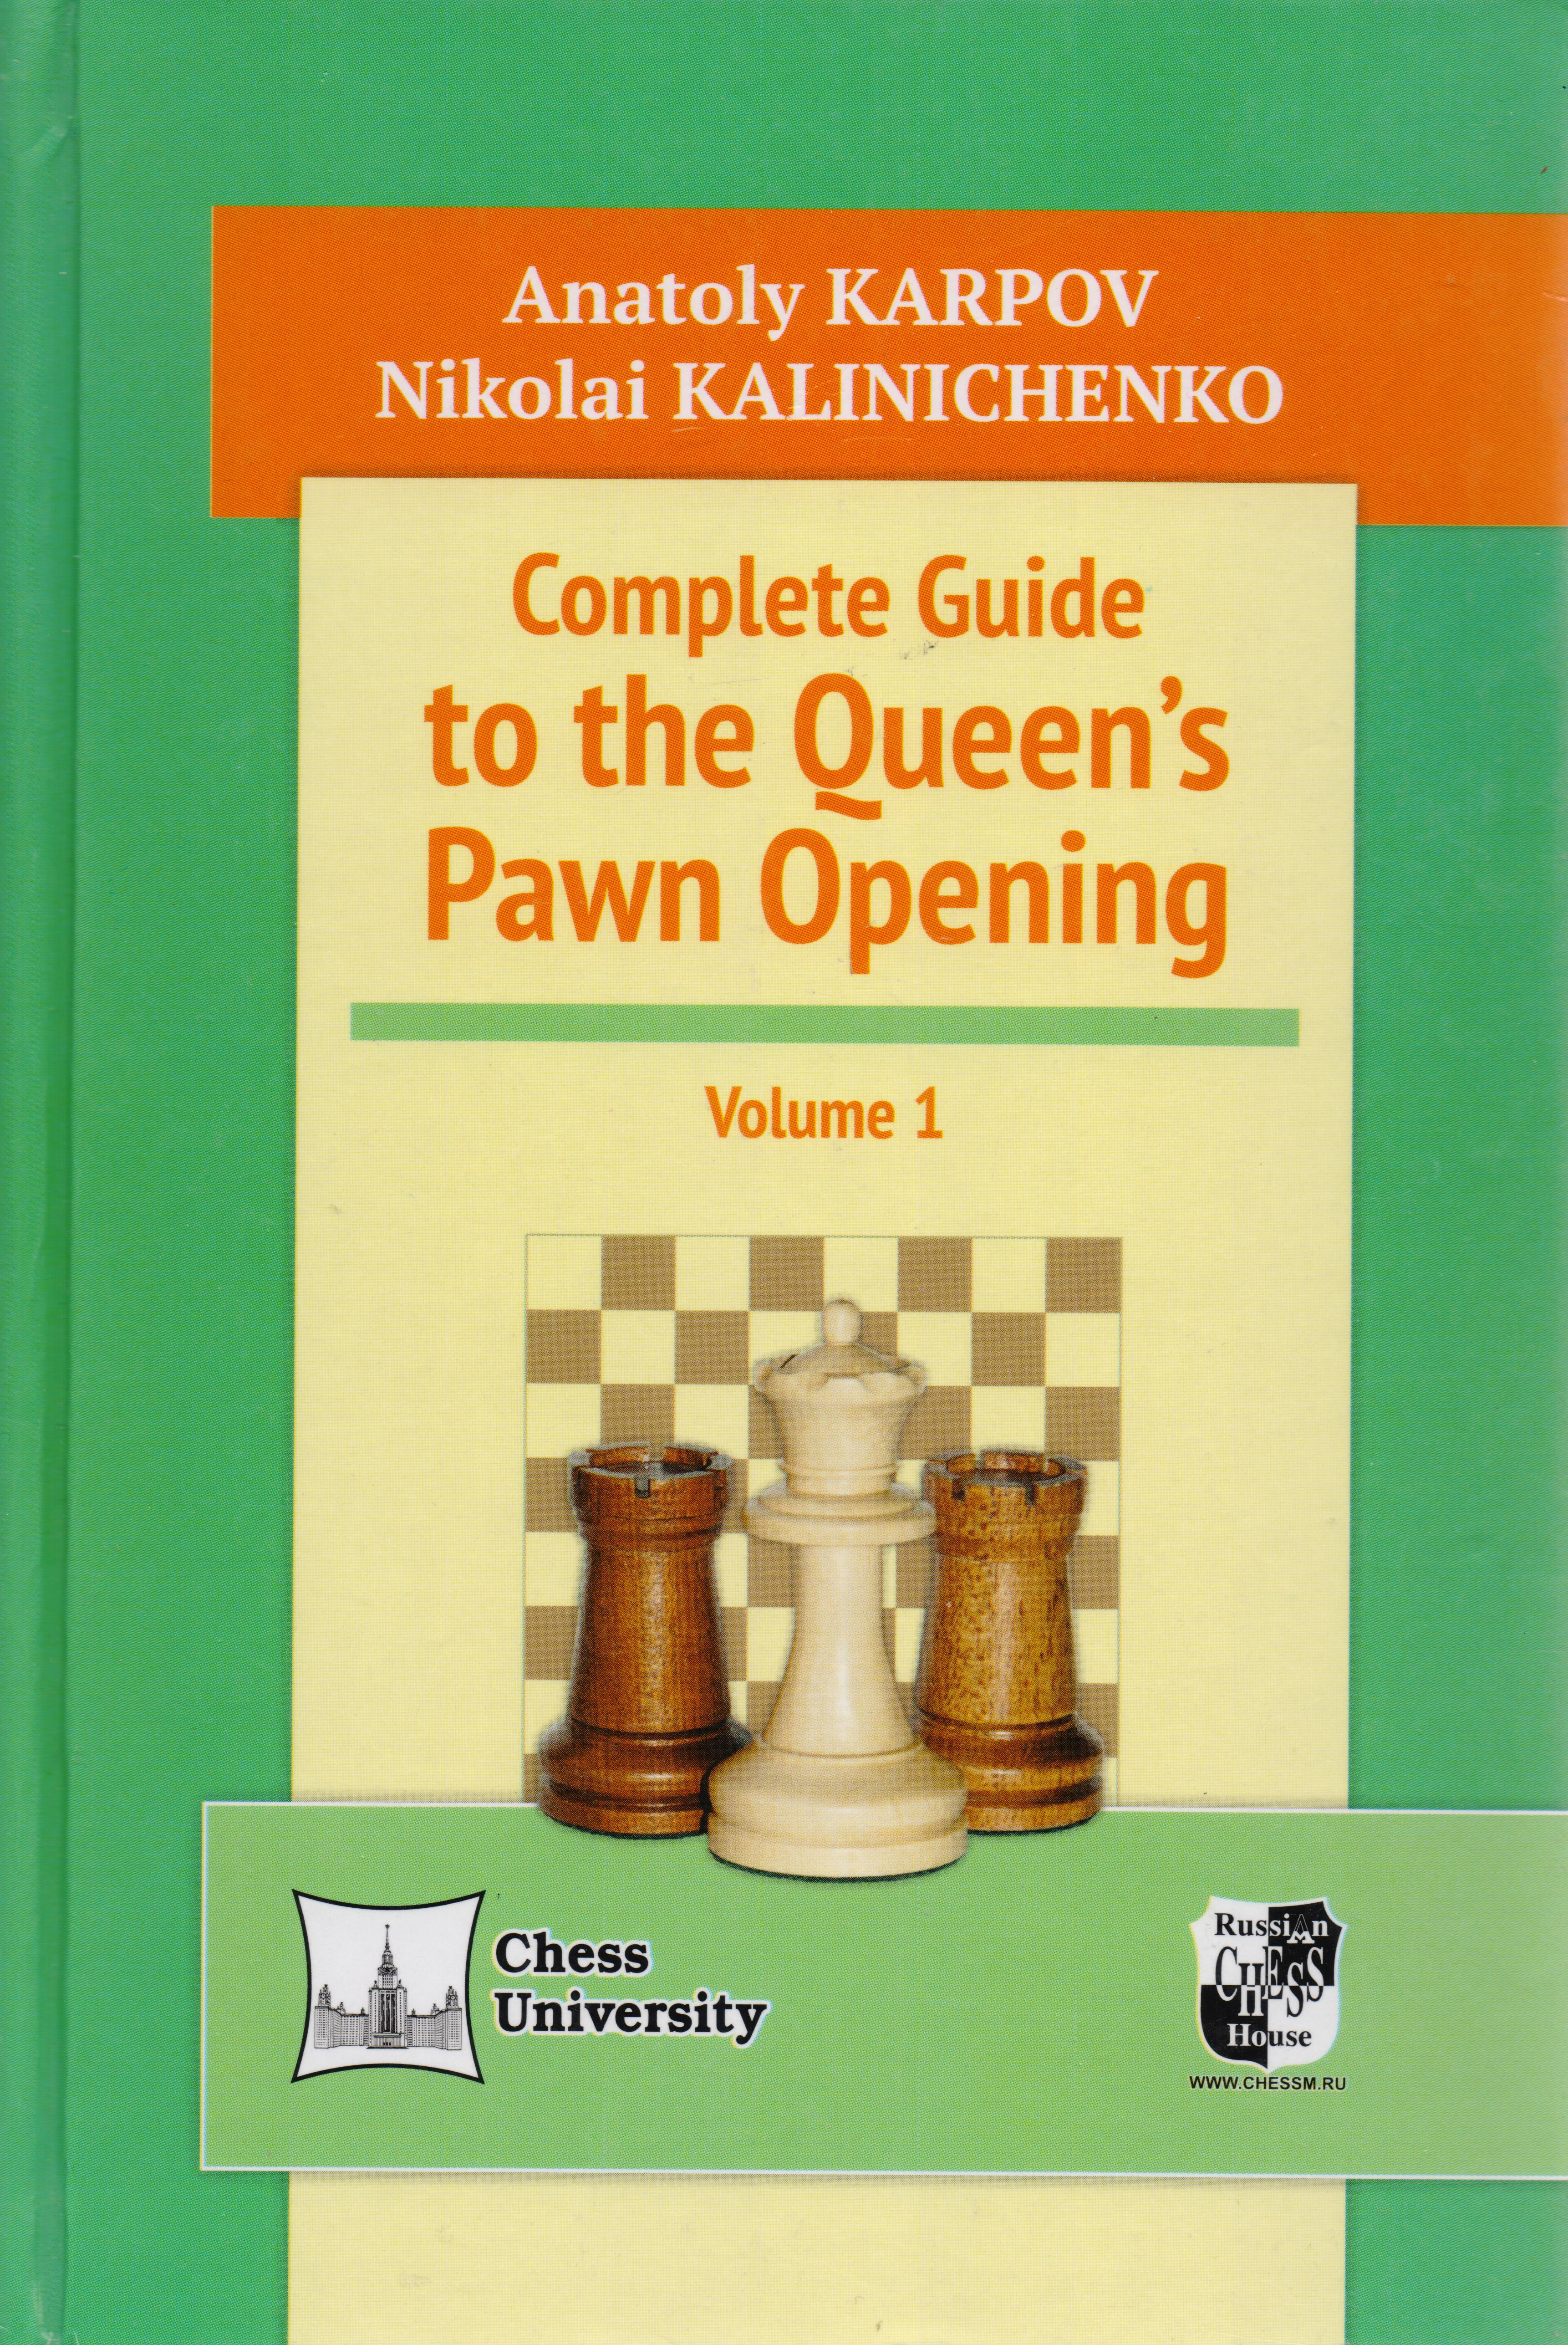 Complete Guide to the Queens Pawn Opening. Volume 1